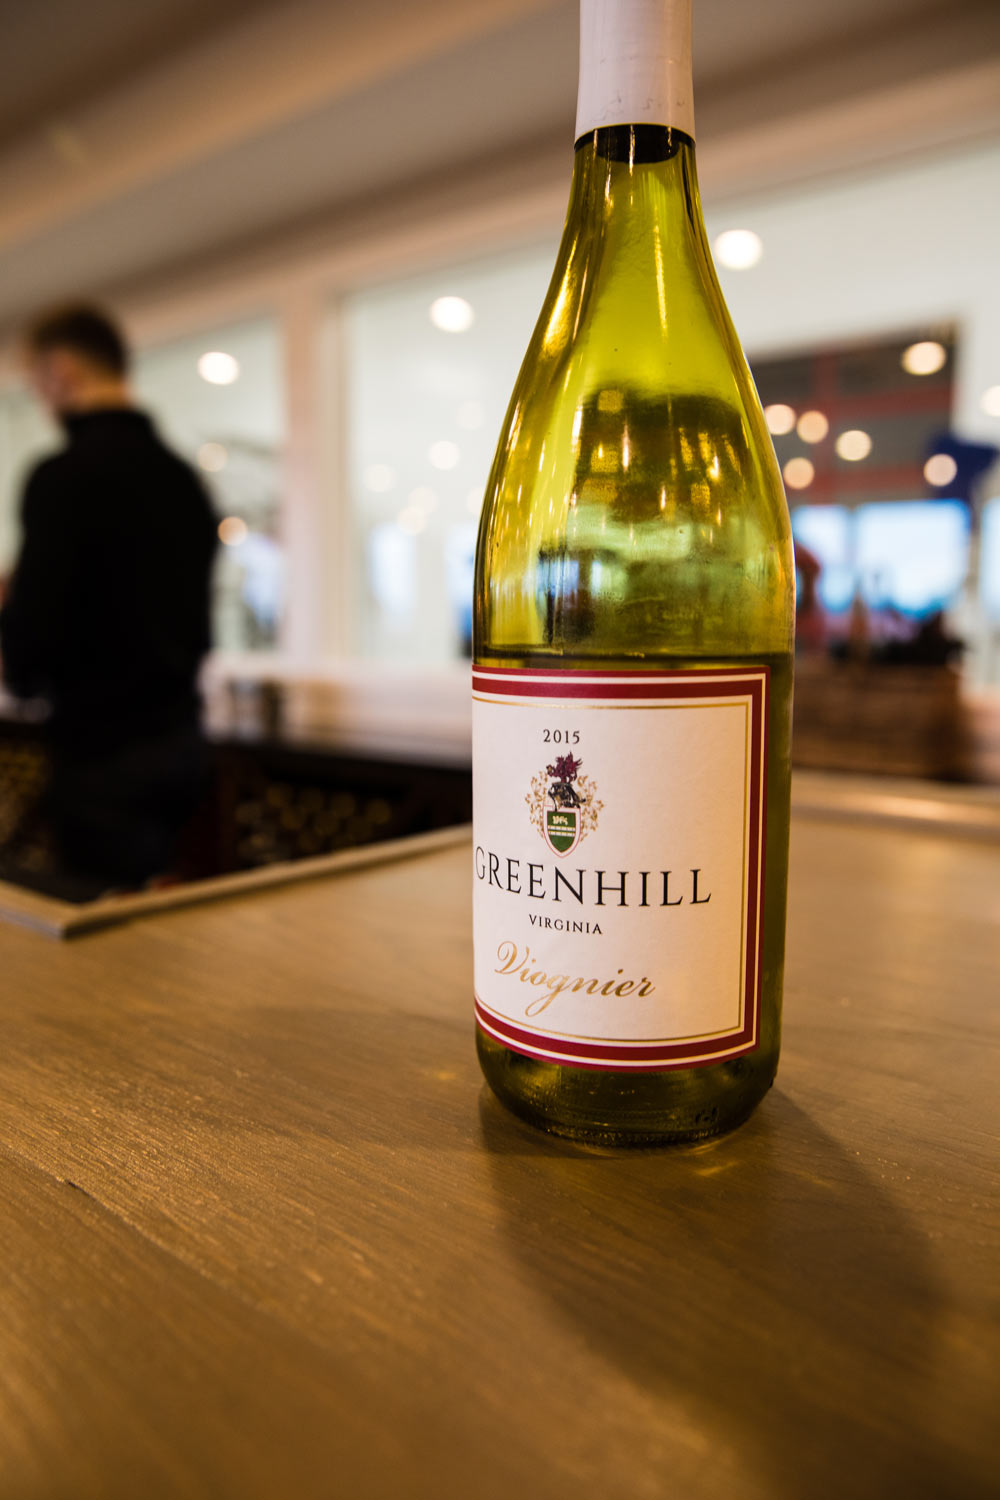 The Greenhill Viognier was one of several wines poured at the opening events.